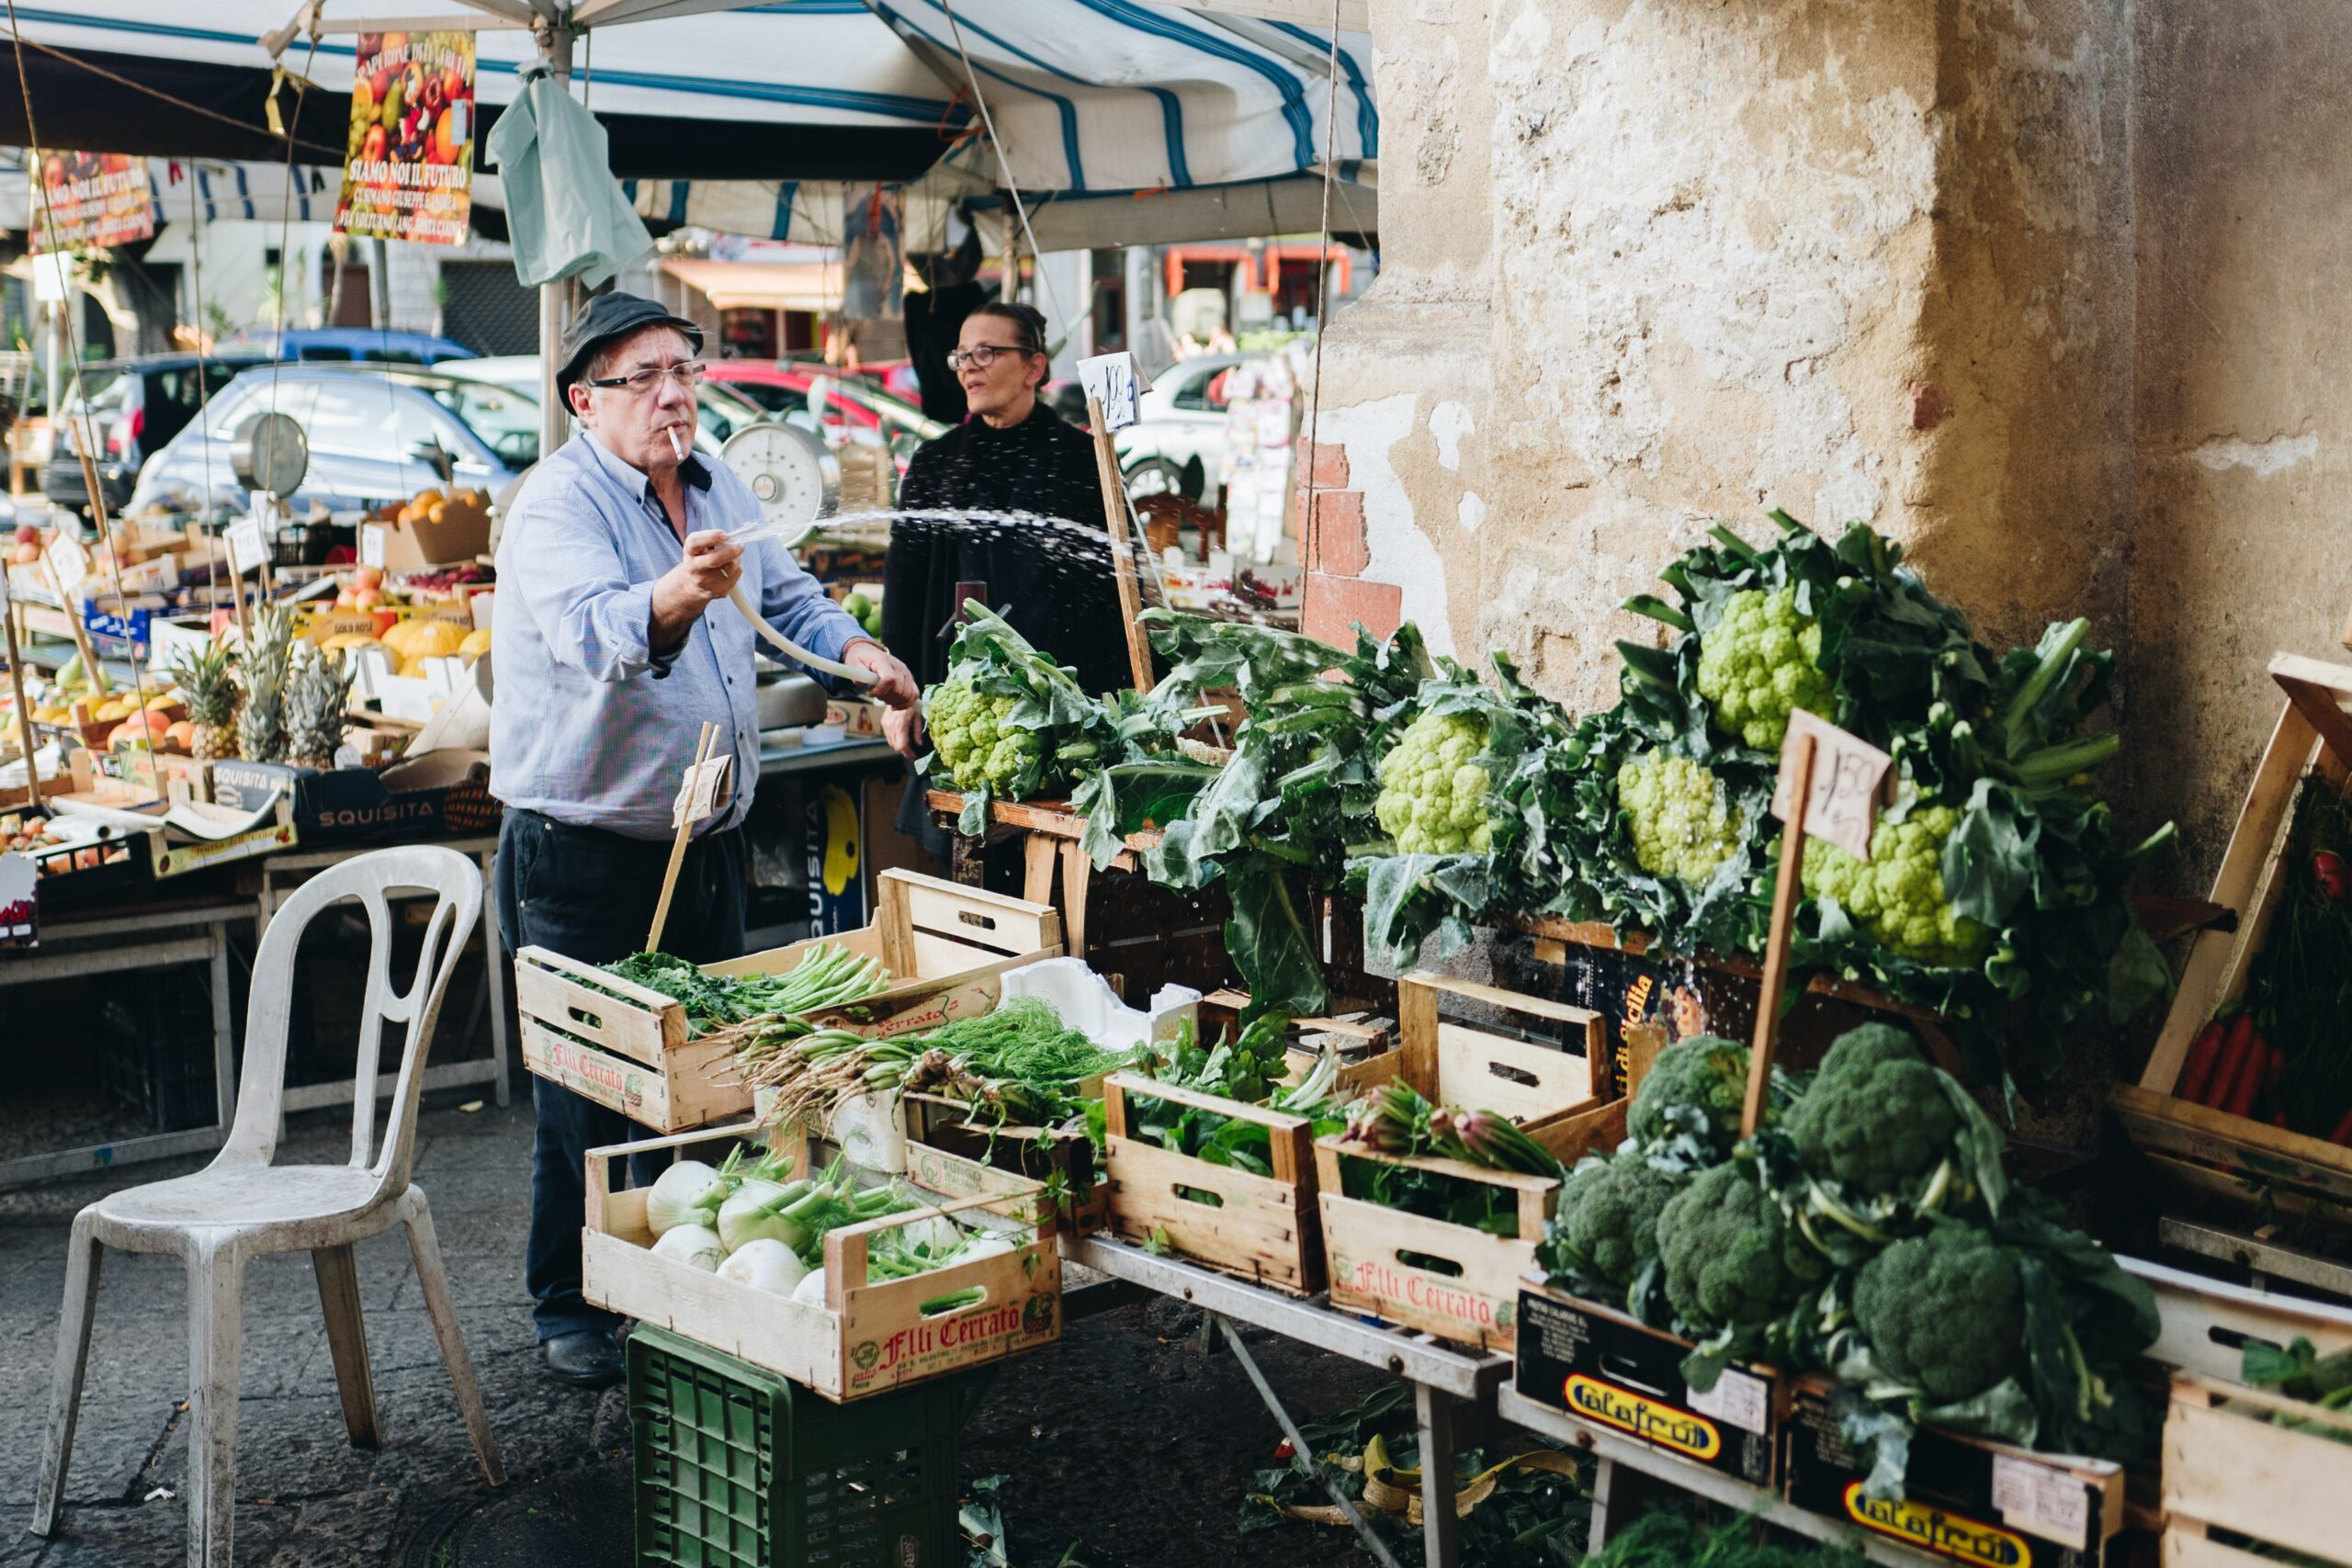 Discover The Food Of Palermo On Our Palermo Street Food Evening Tour